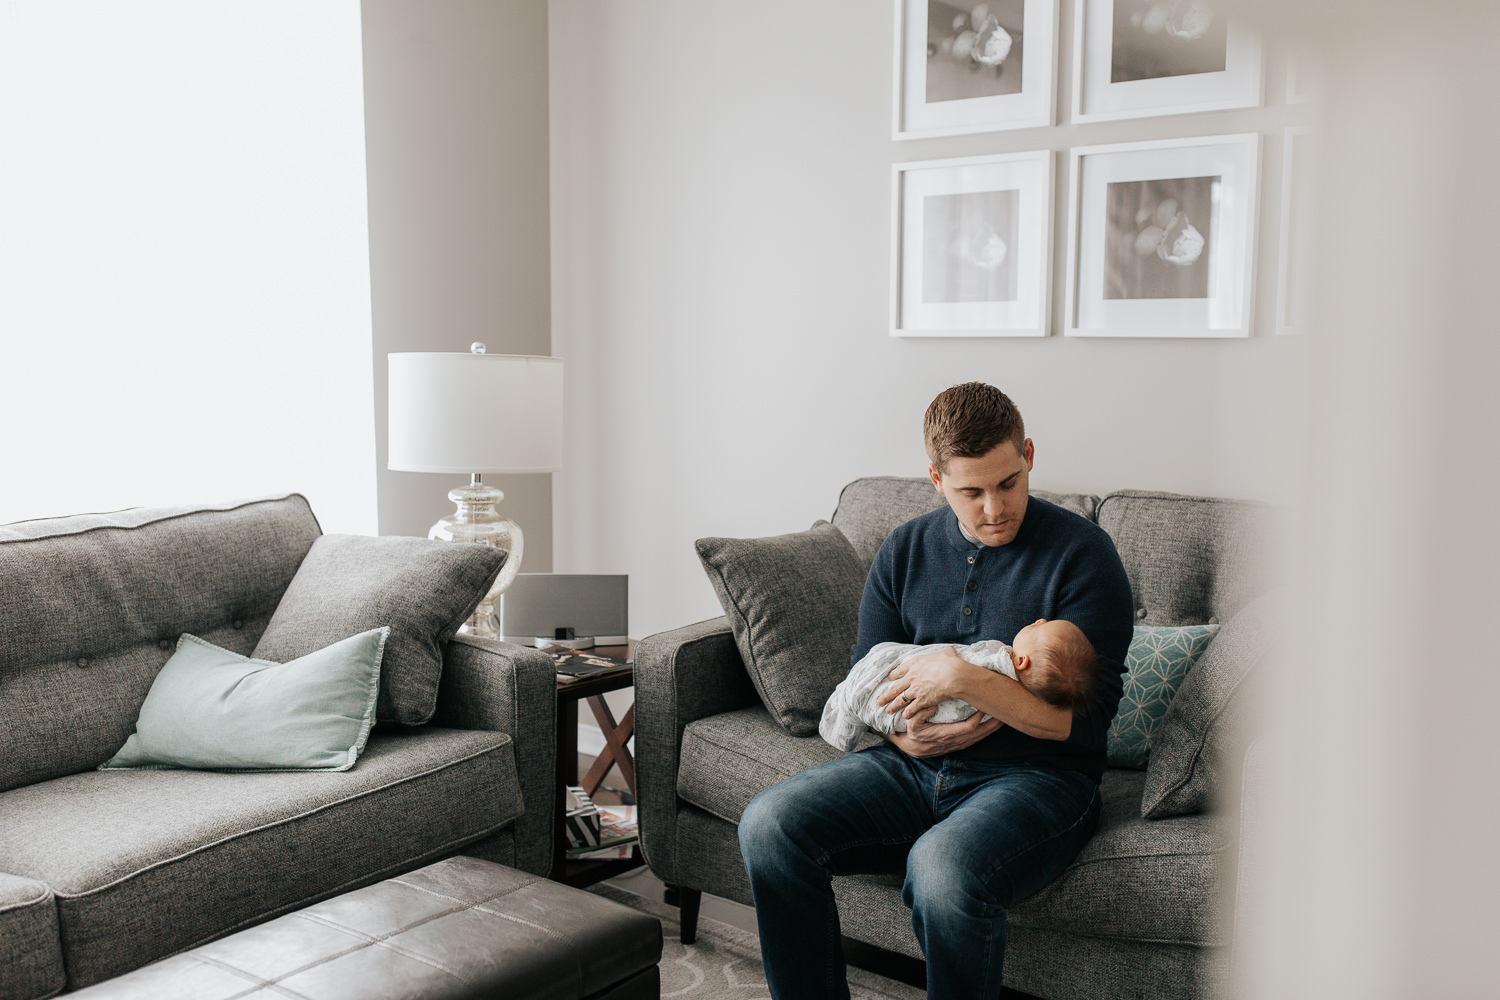 father sitting on couch holding sleeping 2 week old baby boy in his arms, looking at son -  Stouffville Lifestyle Photography